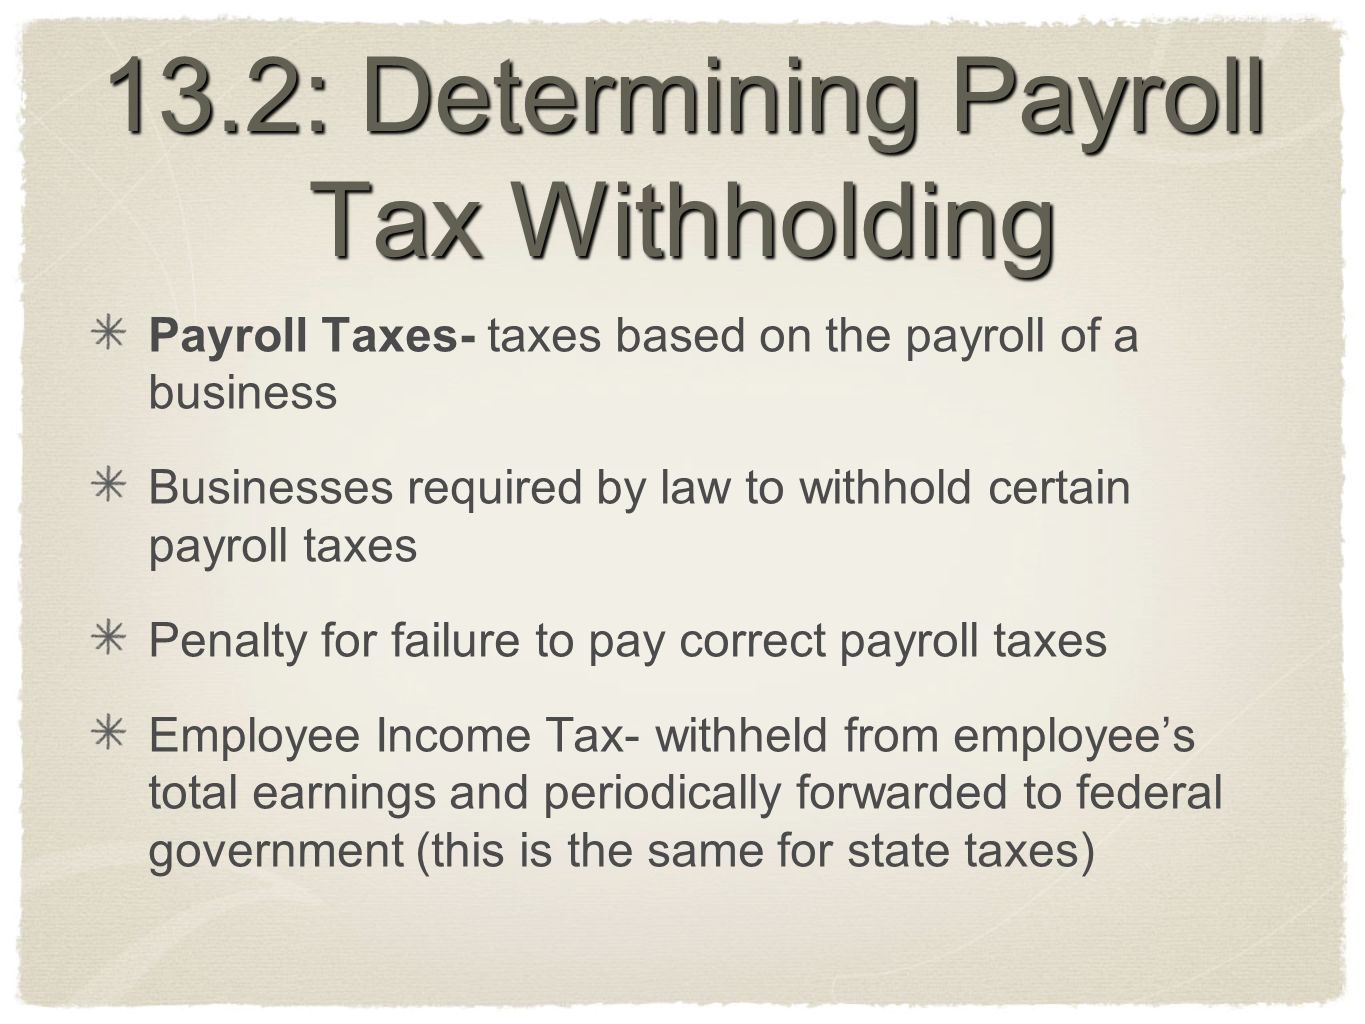 13.2: Determining Payroll Tax Withholding